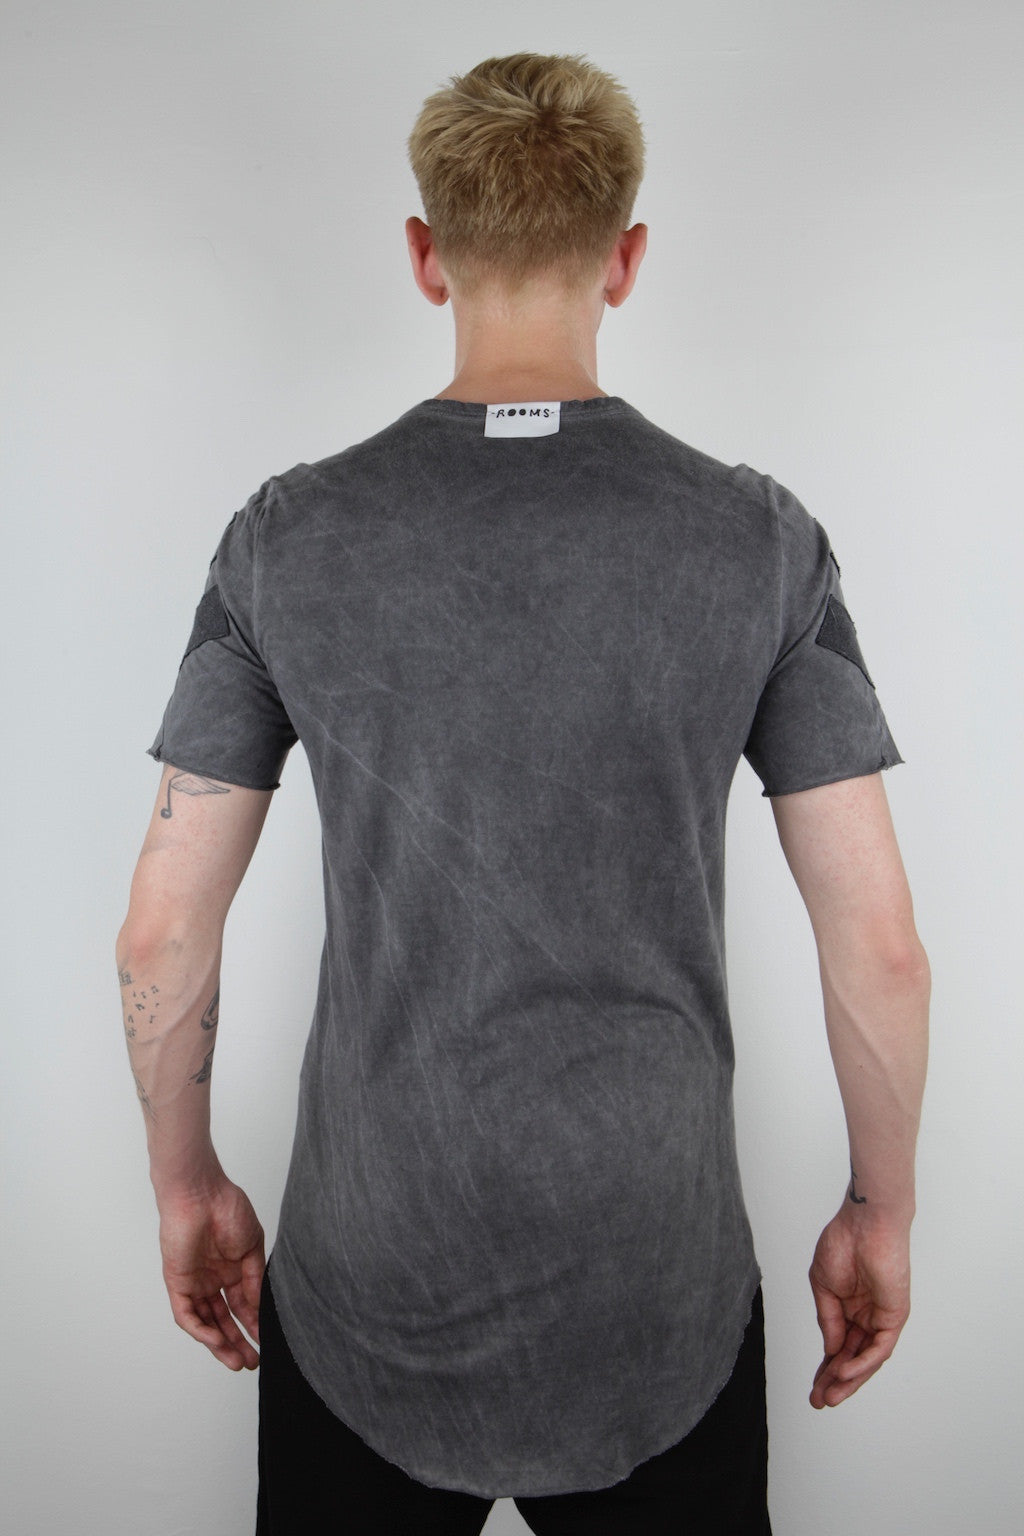 patched t shirt